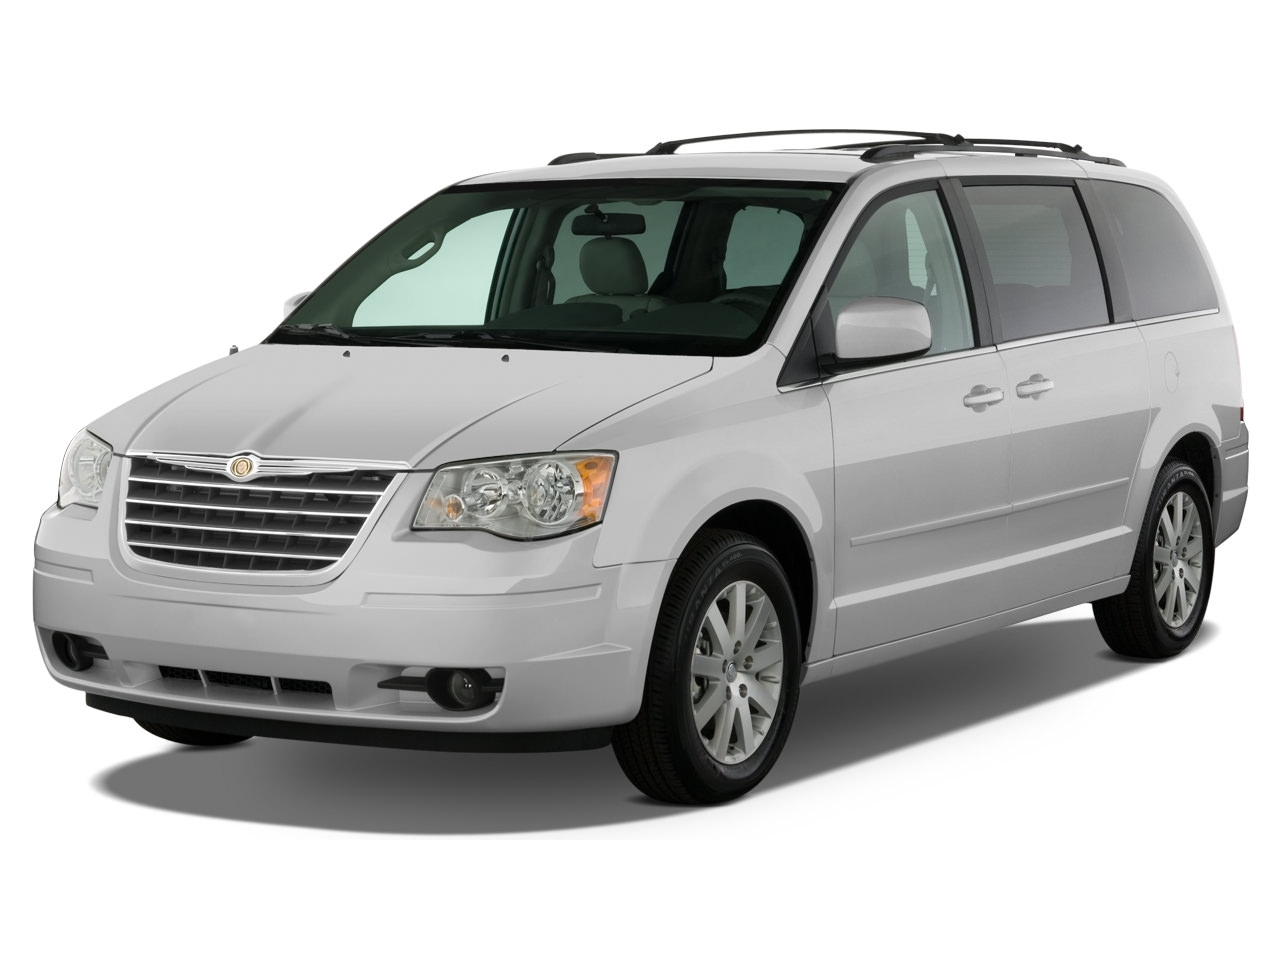 2008 Chrysler Town And Country Warning Reviews - Top 10 Problems within 2008 Chrysler Town And Country Parts Diagram